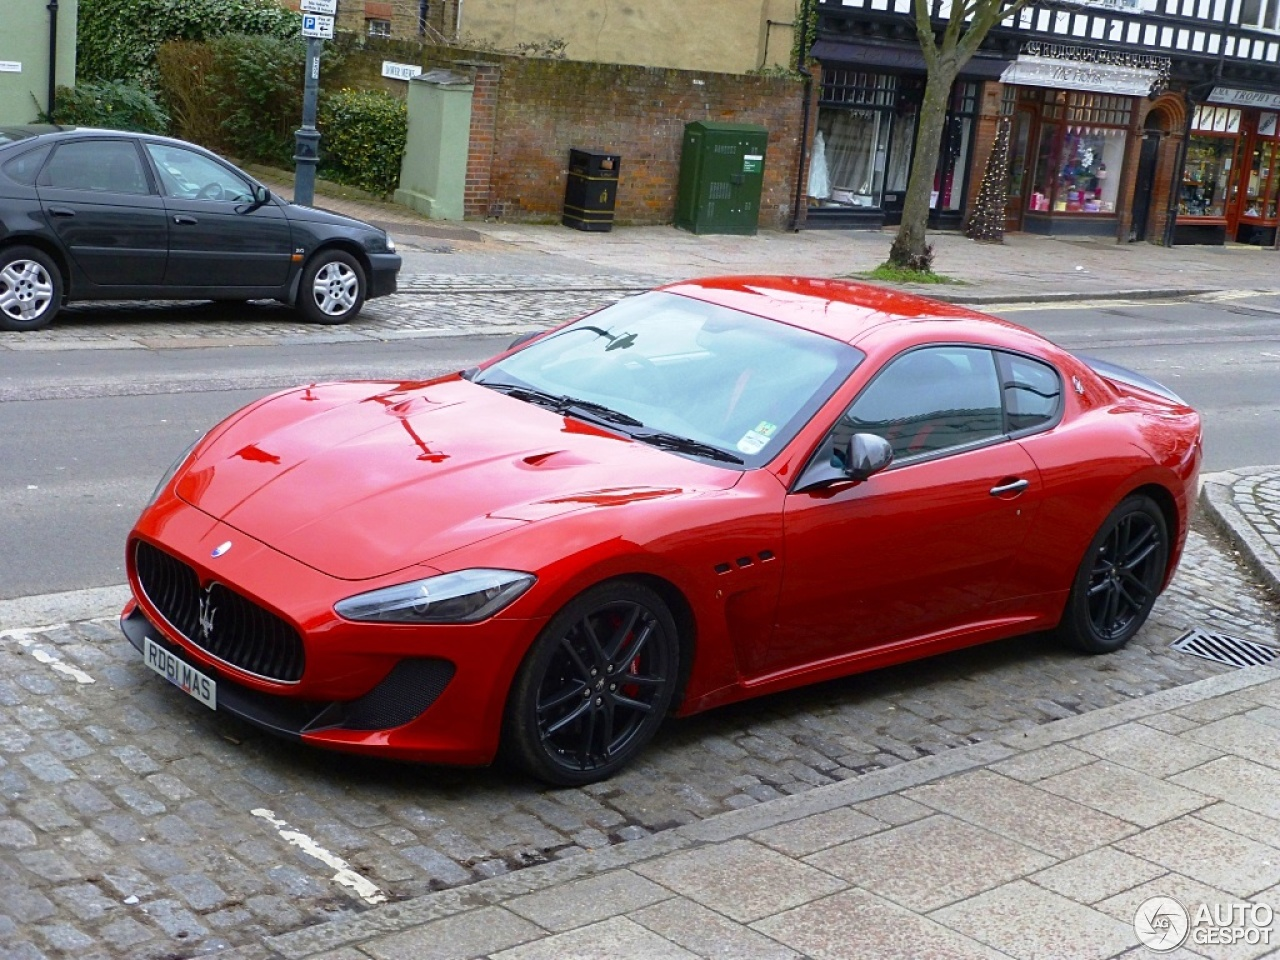 maserati granturismo mc stradale 19 may 2013 autogespot. Black Bedroom Furniture Sets. Home Design Ideas